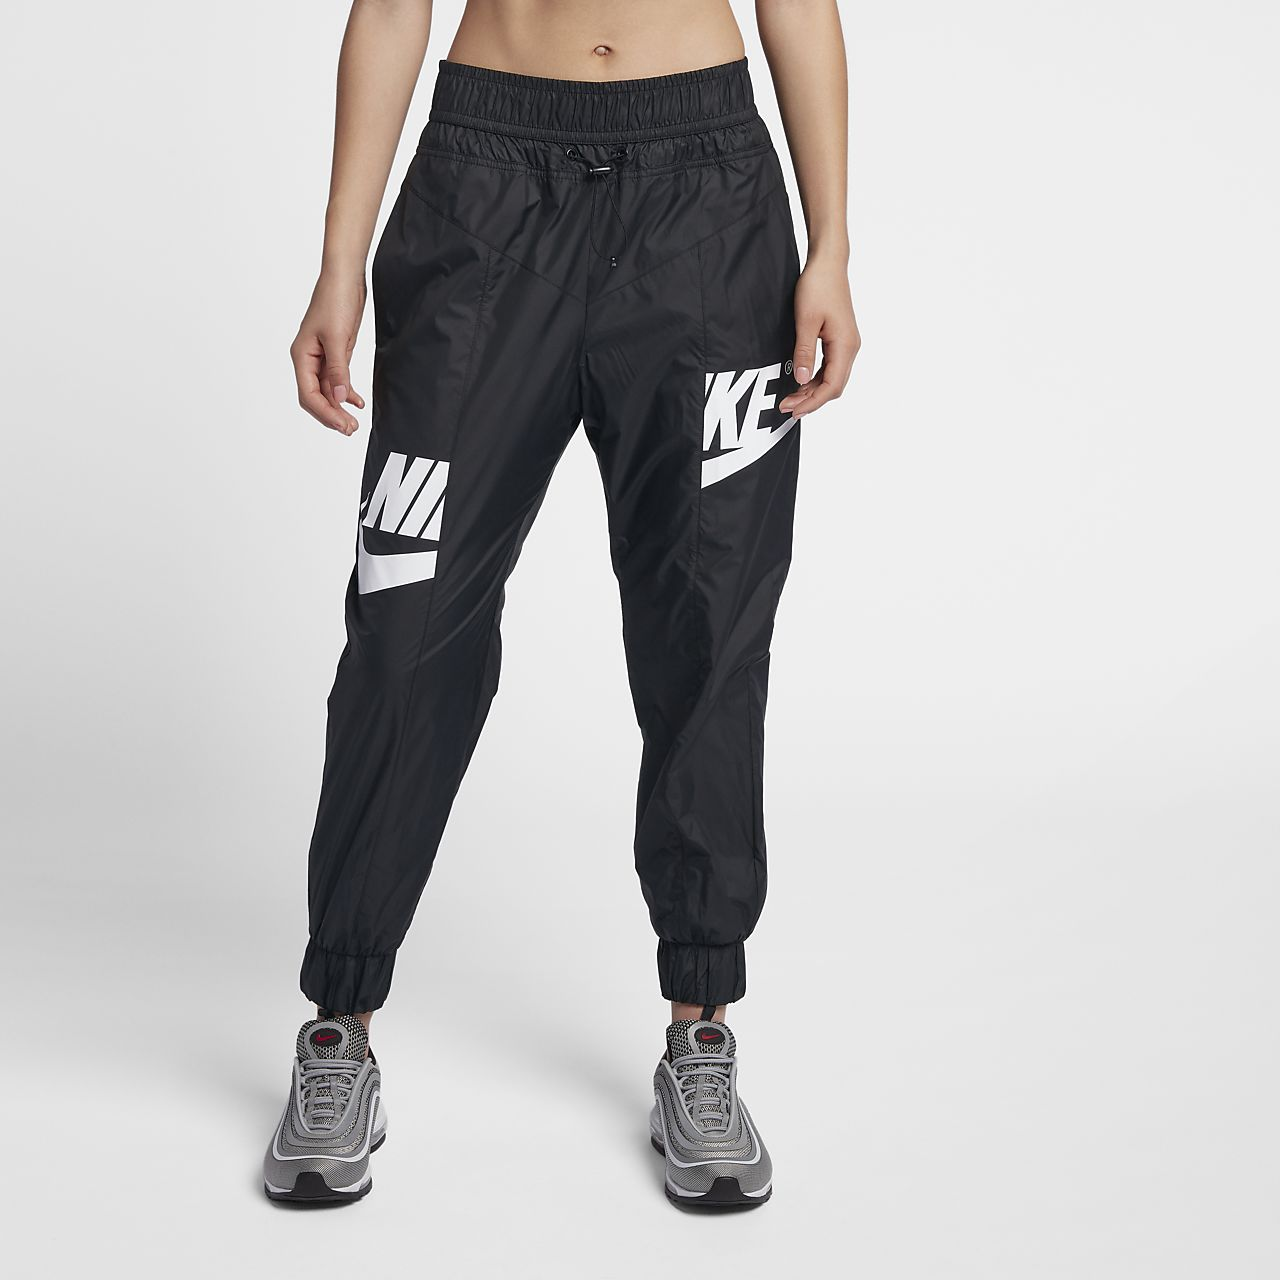 Low Resolution Nike Sportswear Women's Pants Nike Sportswear Women's Pants